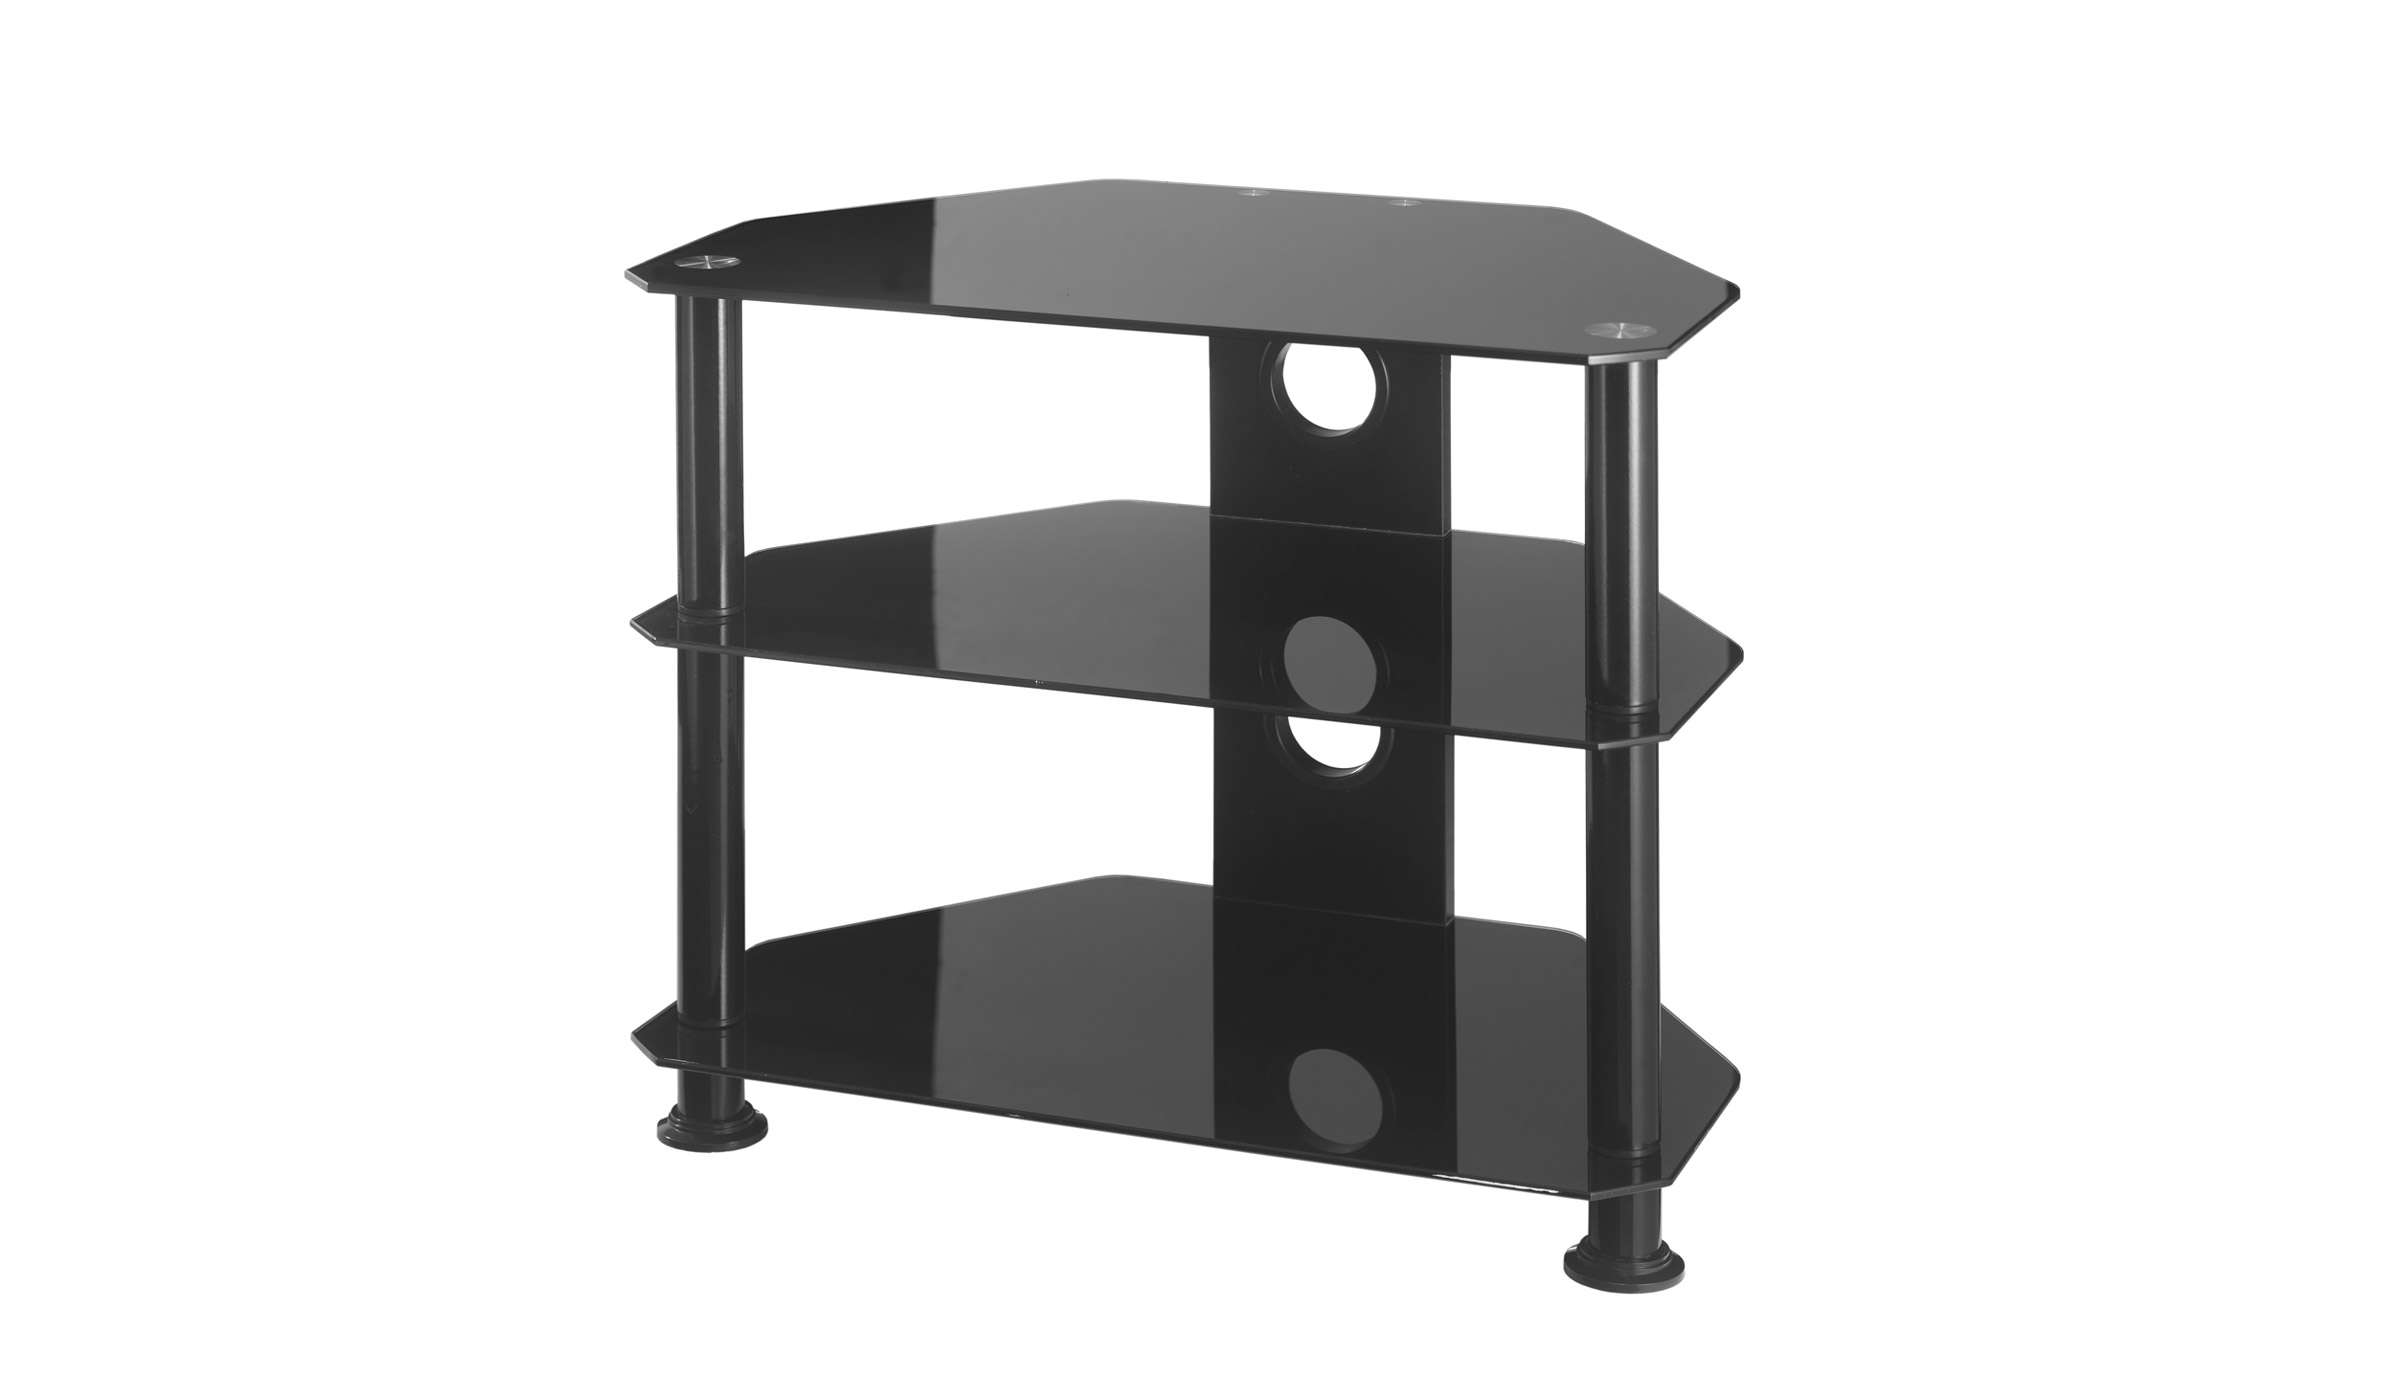 Small Glass Corner Tv Stand Up To 26 Inch Tv | Mmt Db600 For Small Corner Tv Cabinets (View 5 of 20)